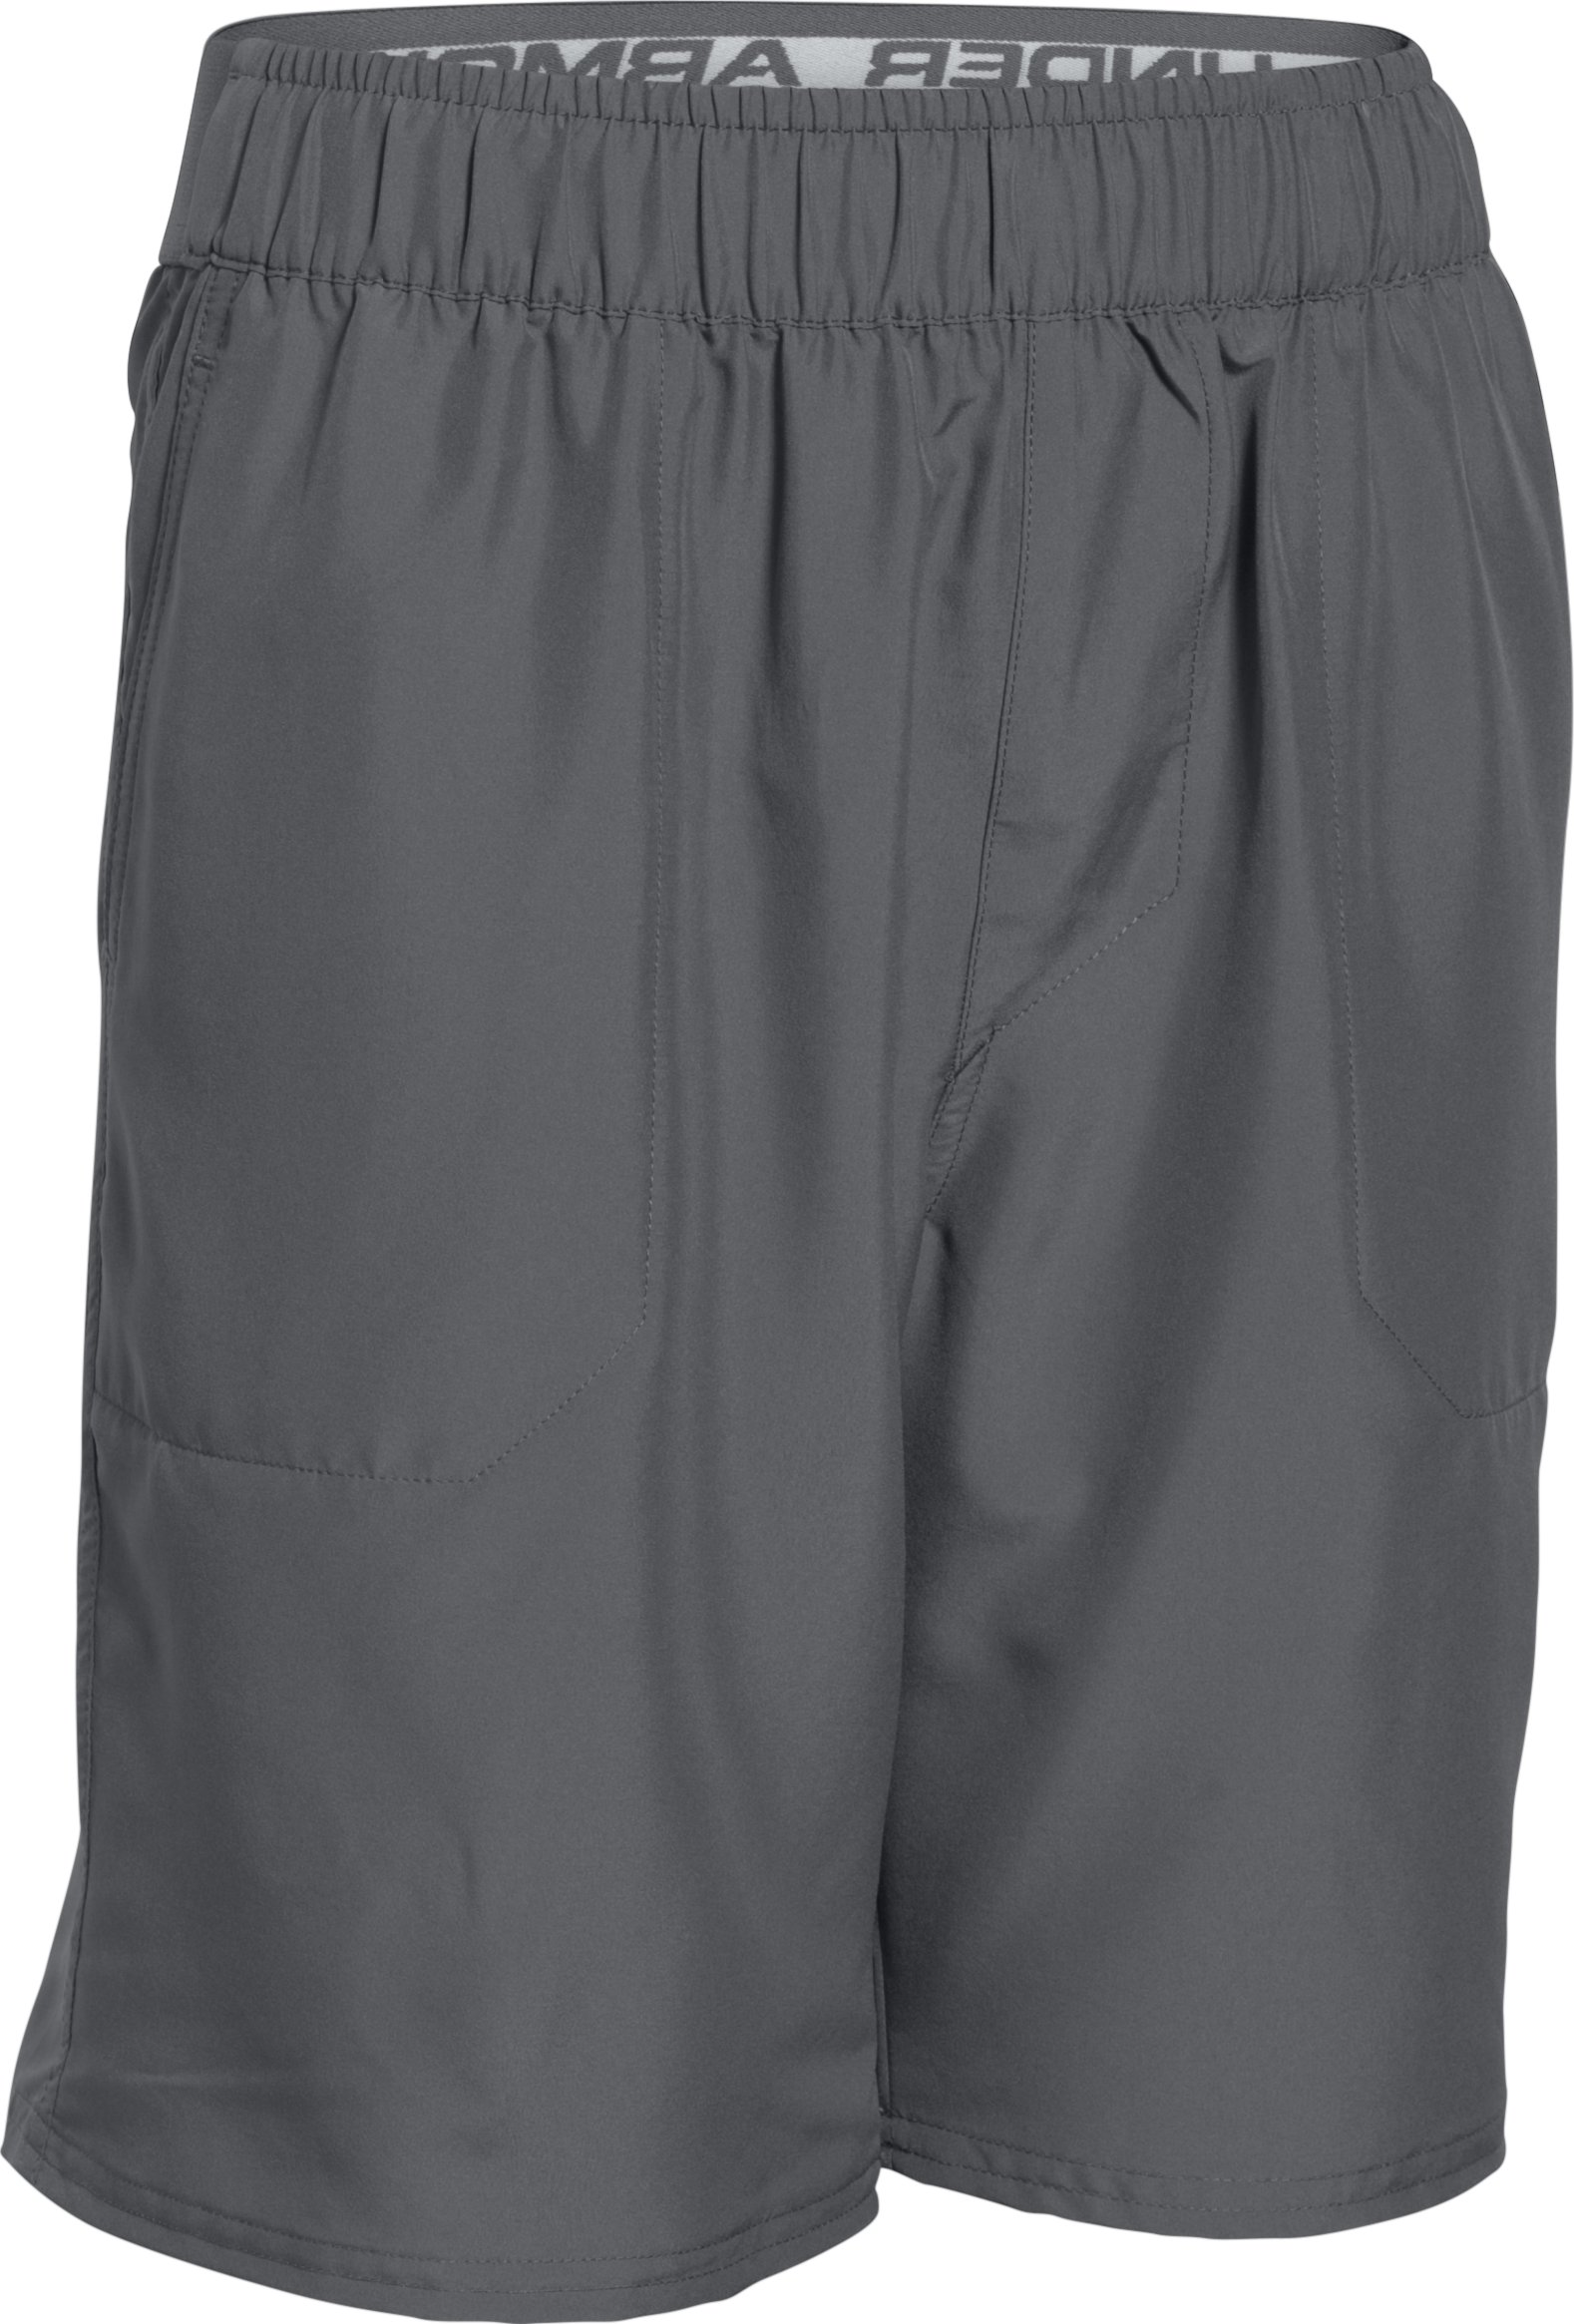 Boys' UA Coastal Amphibious Shorts, Graphite